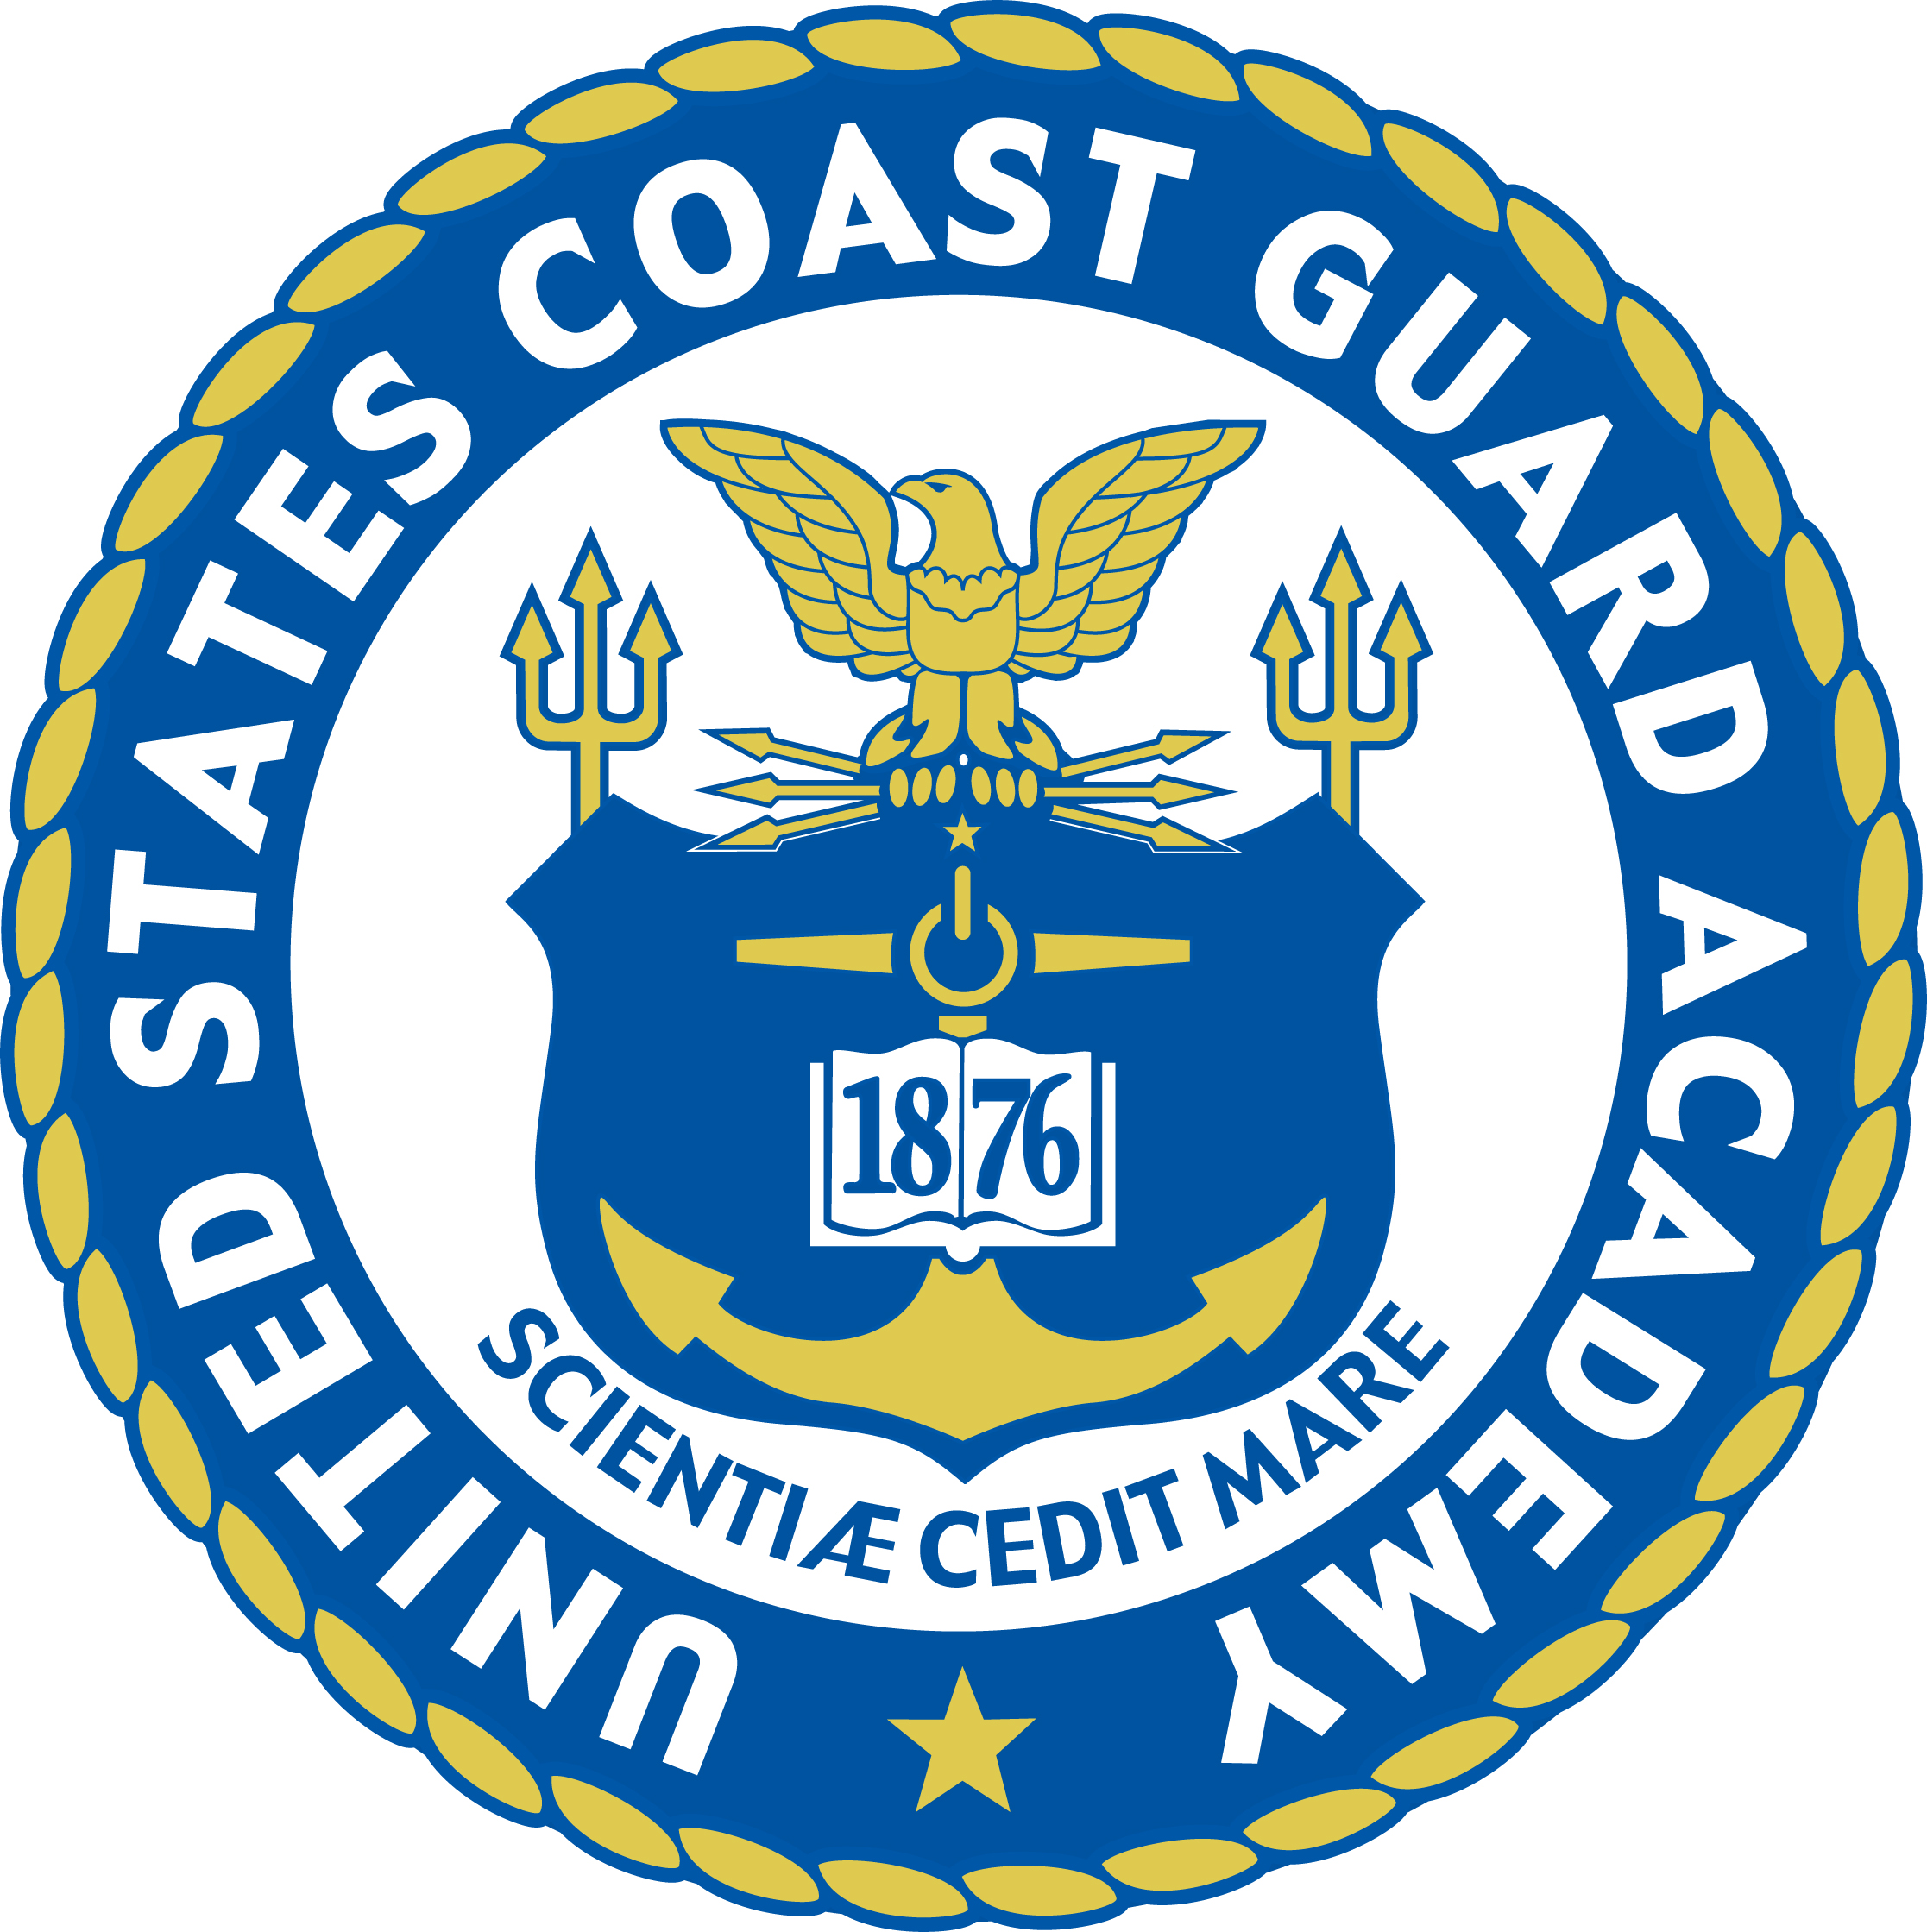 https://upload.wikimedia.org/wikipedia/commons/f/fe/United_States_Coast_Guard_Academy_seal.jpg